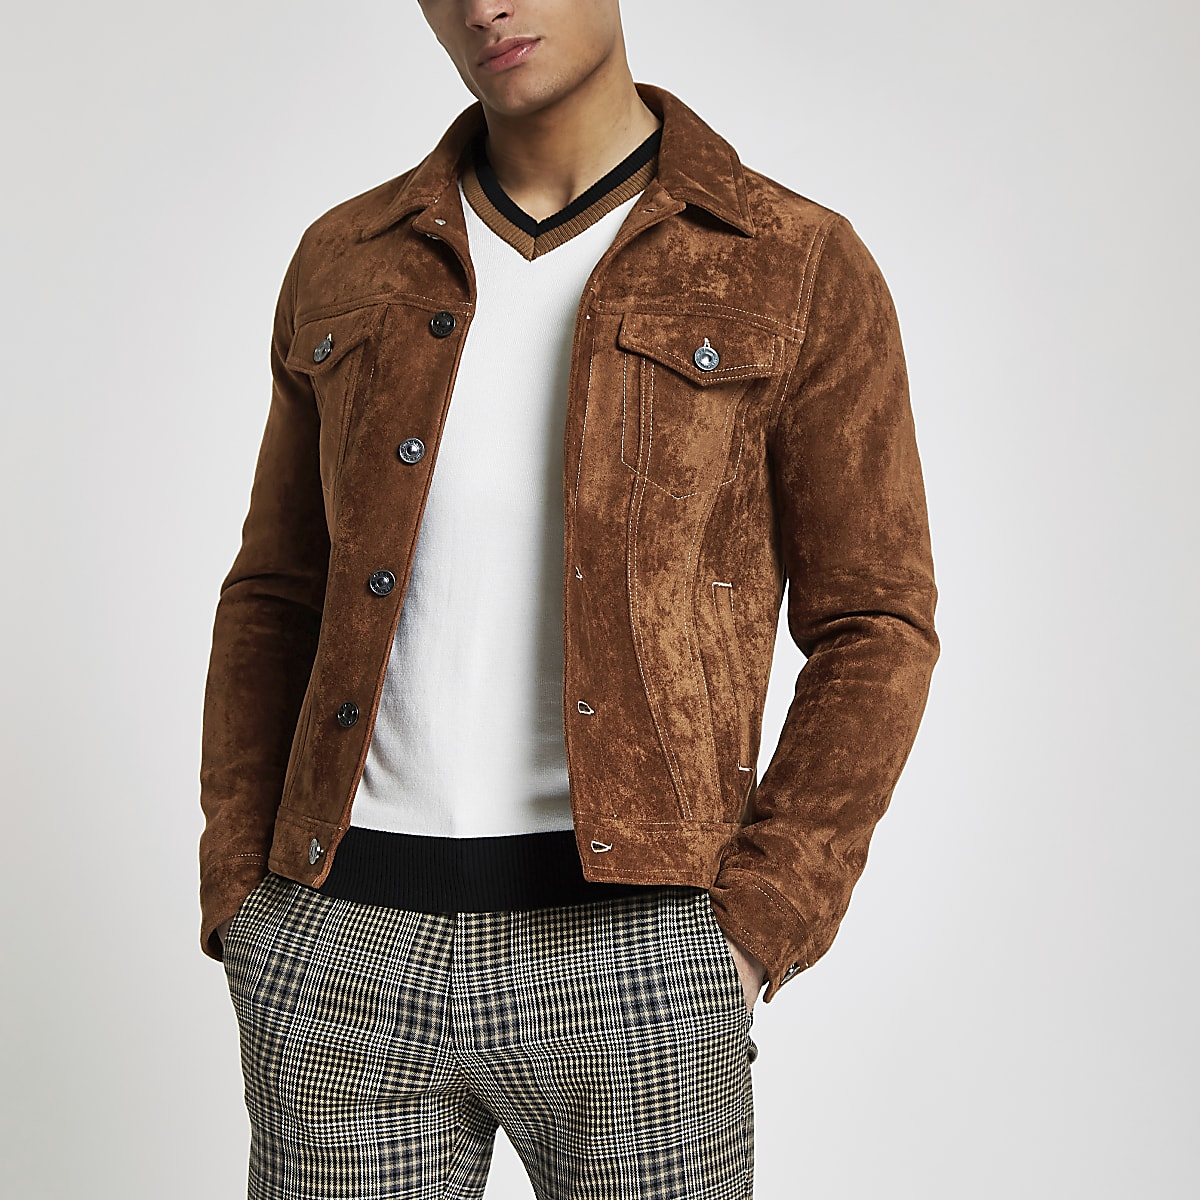 91926e4fa Brown faux suede western jacket